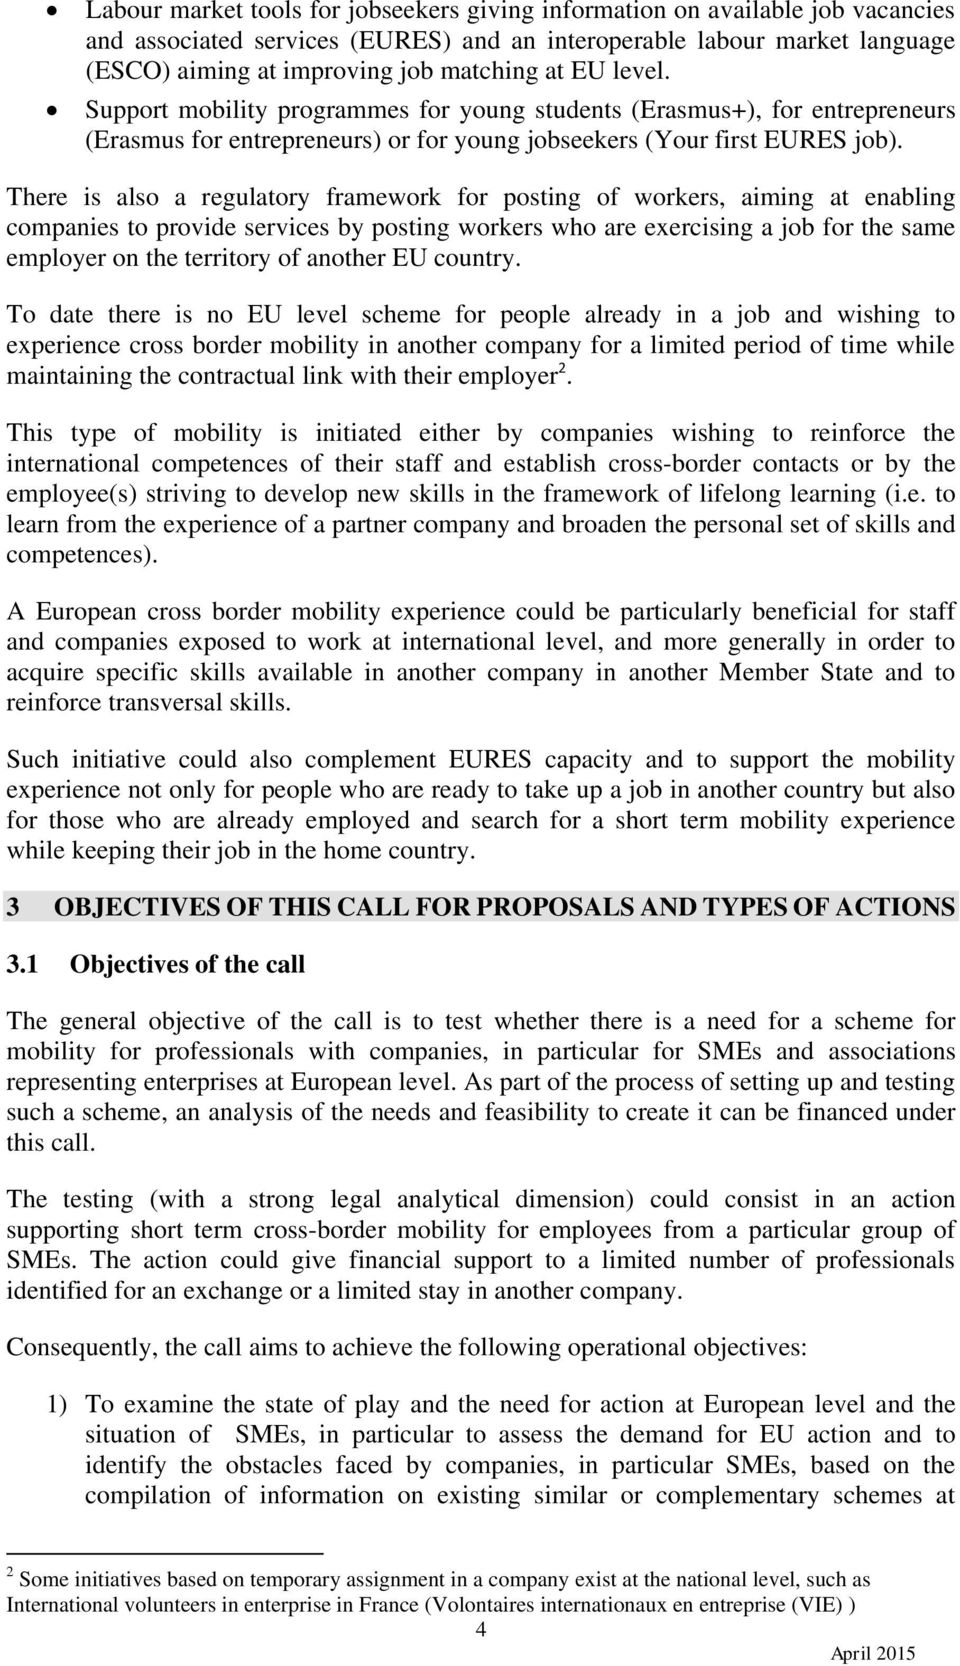 There is also a regulatory framework for posting of workers, aiming at enabling companies to provide services by posting workers who are exercising a job for the same employer on the territory of